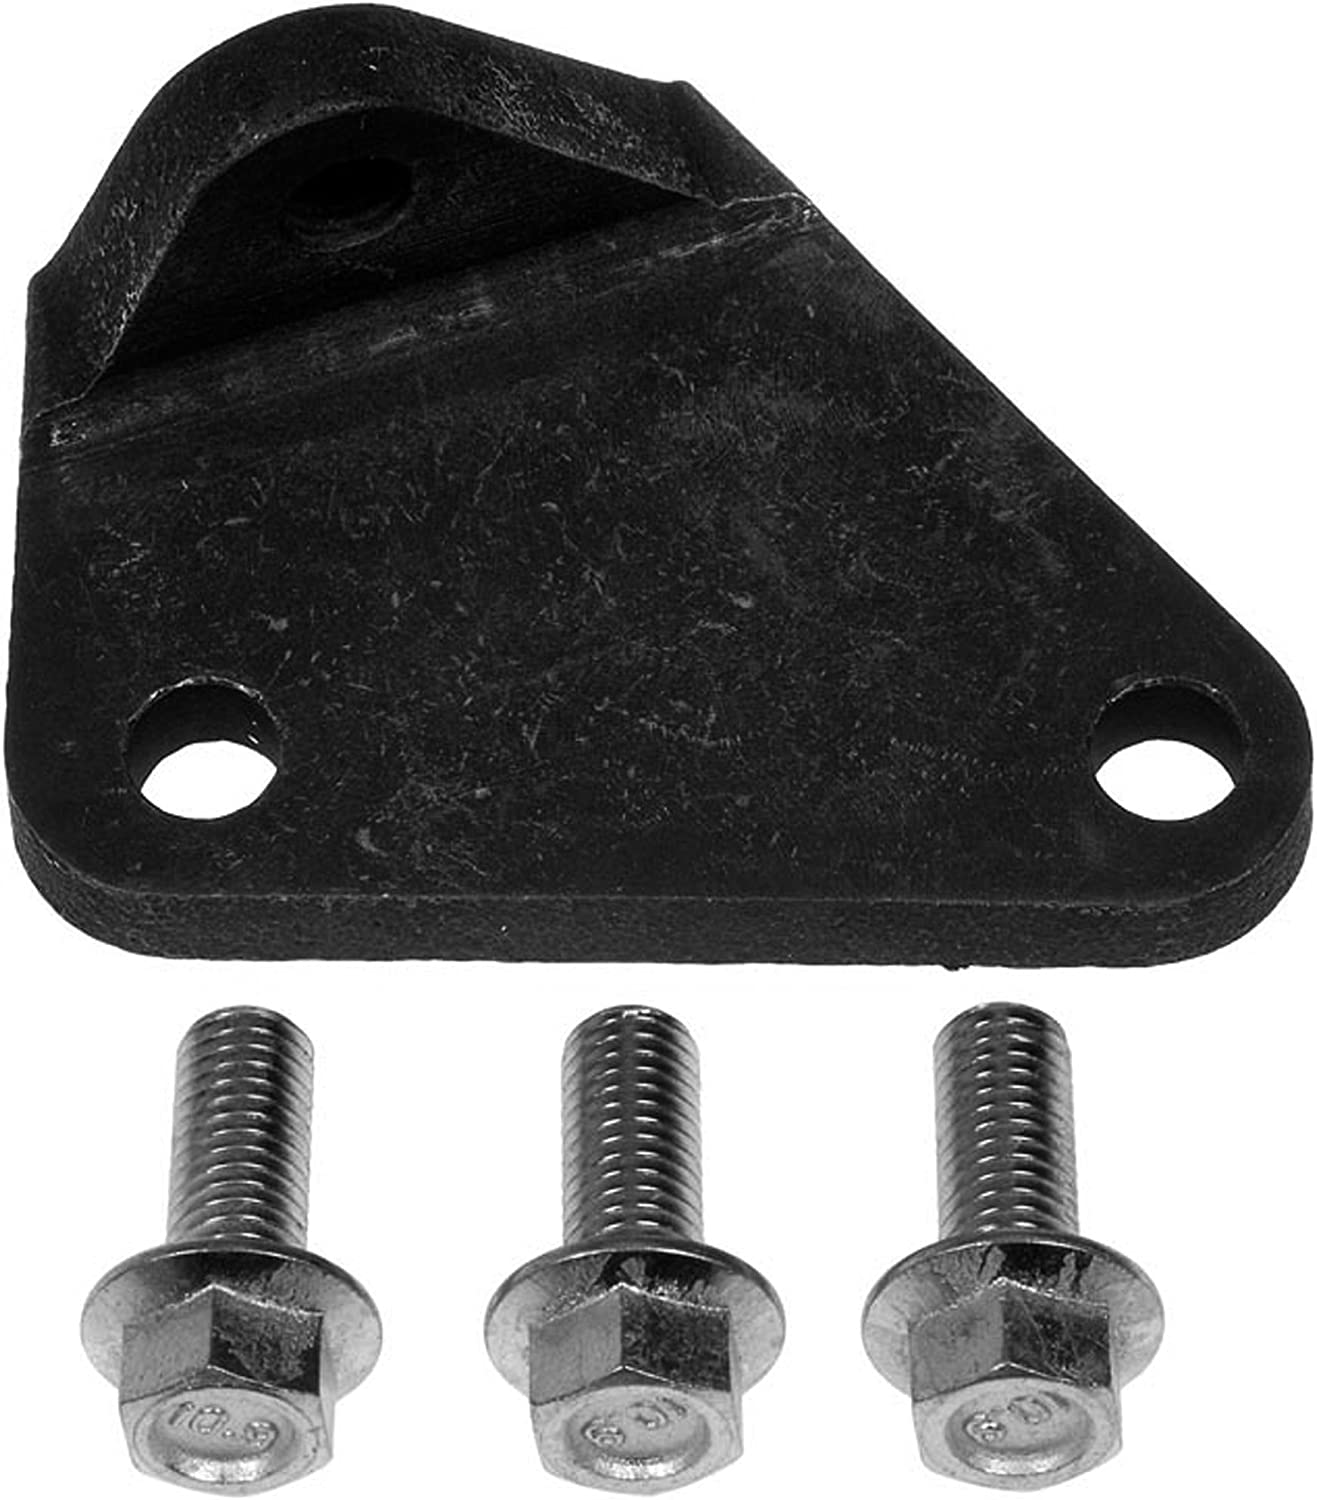 Dorman Rear Left Exhaust Manifold to Cylinder Head Repair Clamp for Chevy ok